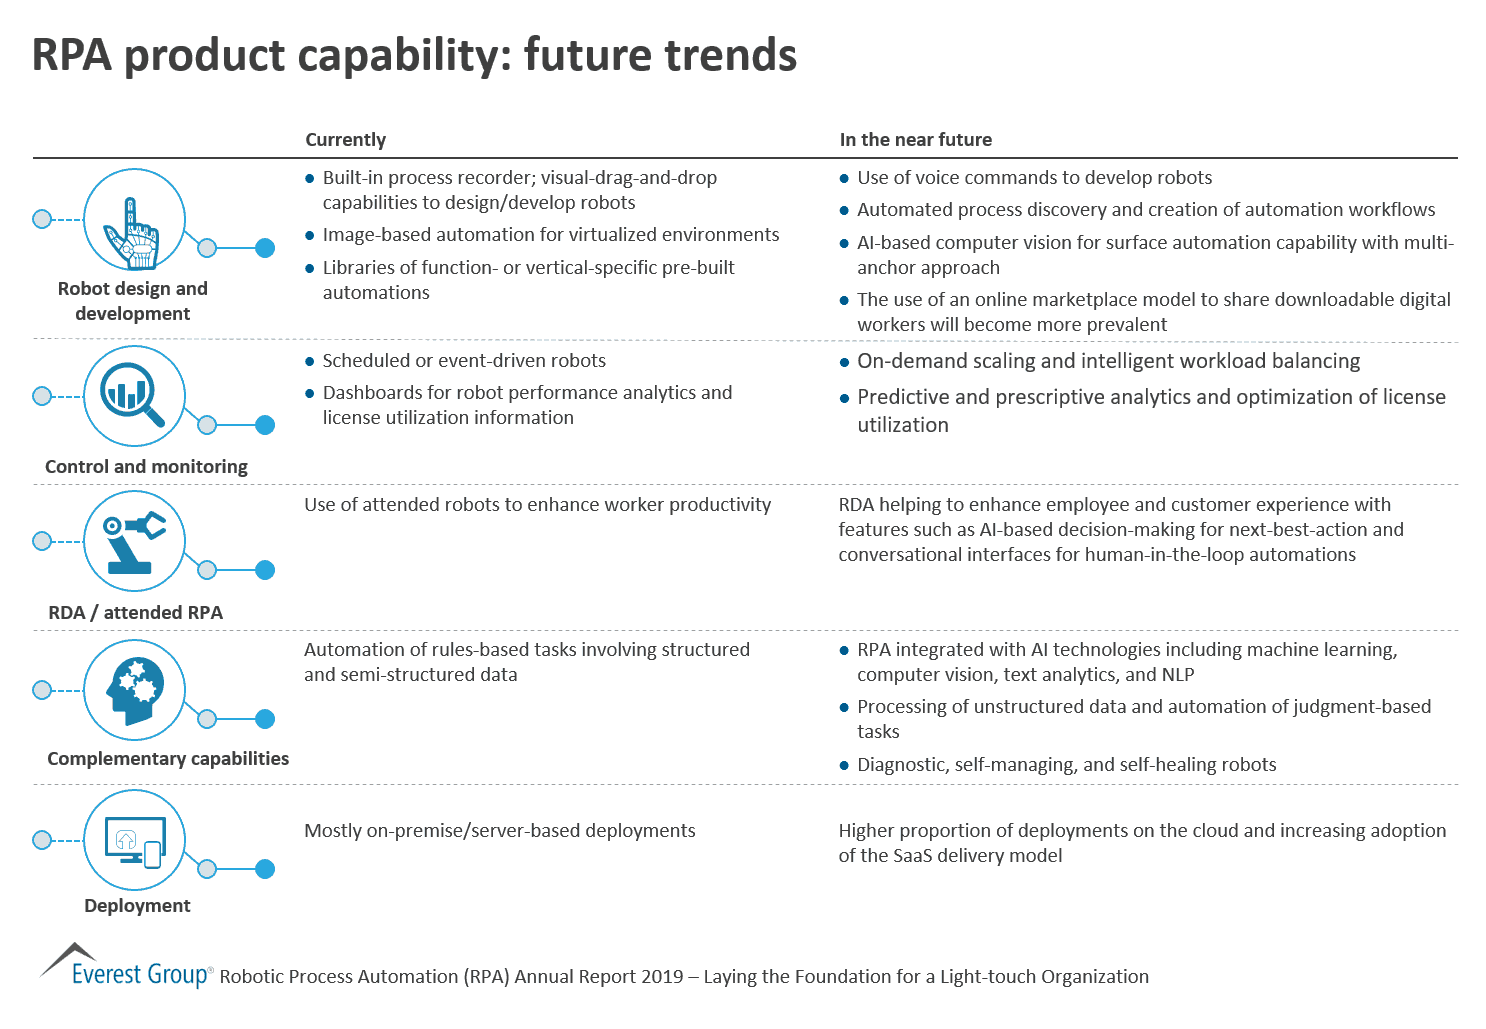 RPA product capability - future trends